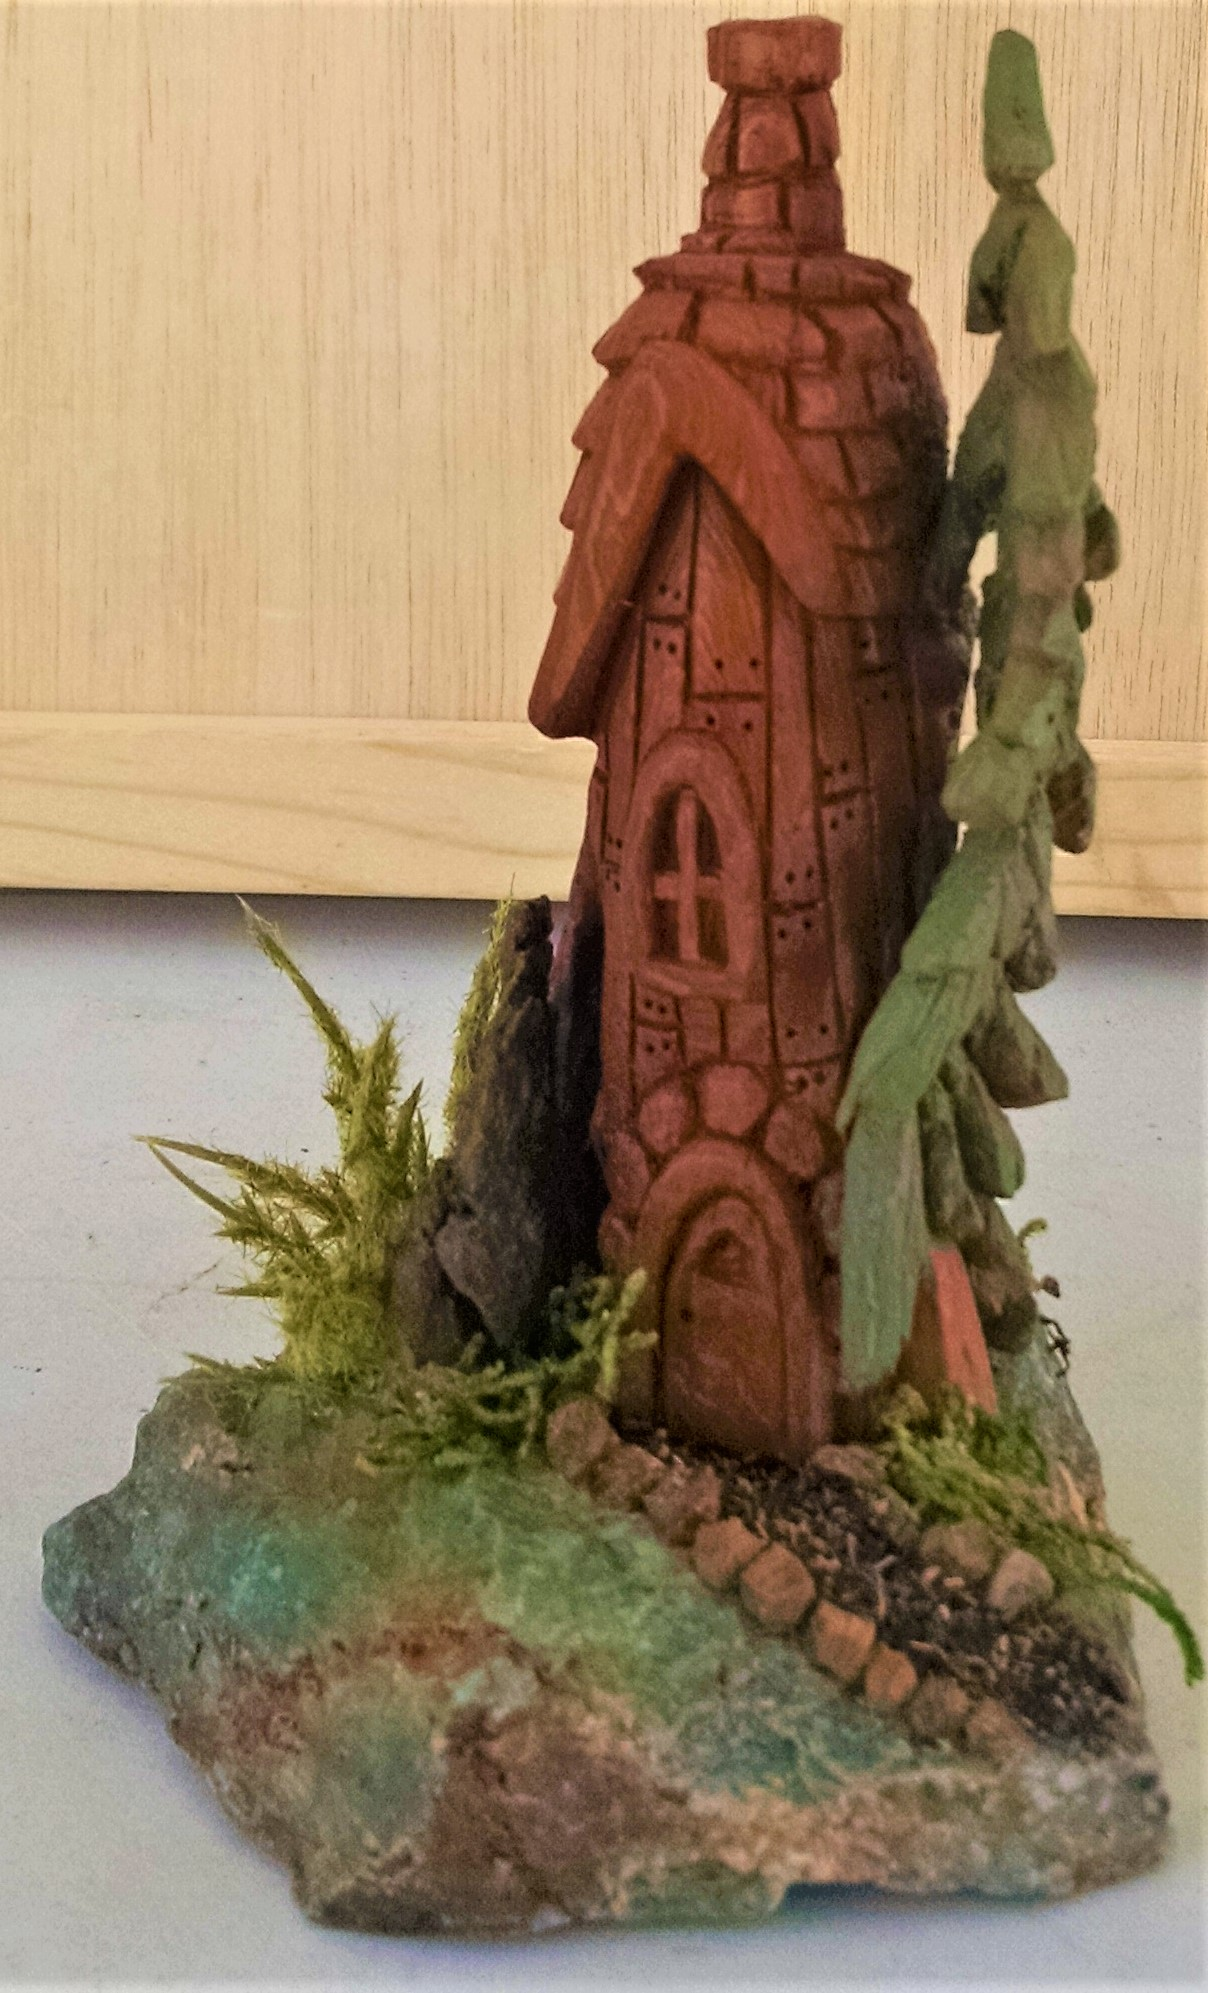 Fairy house with rock yard and pine tree side view